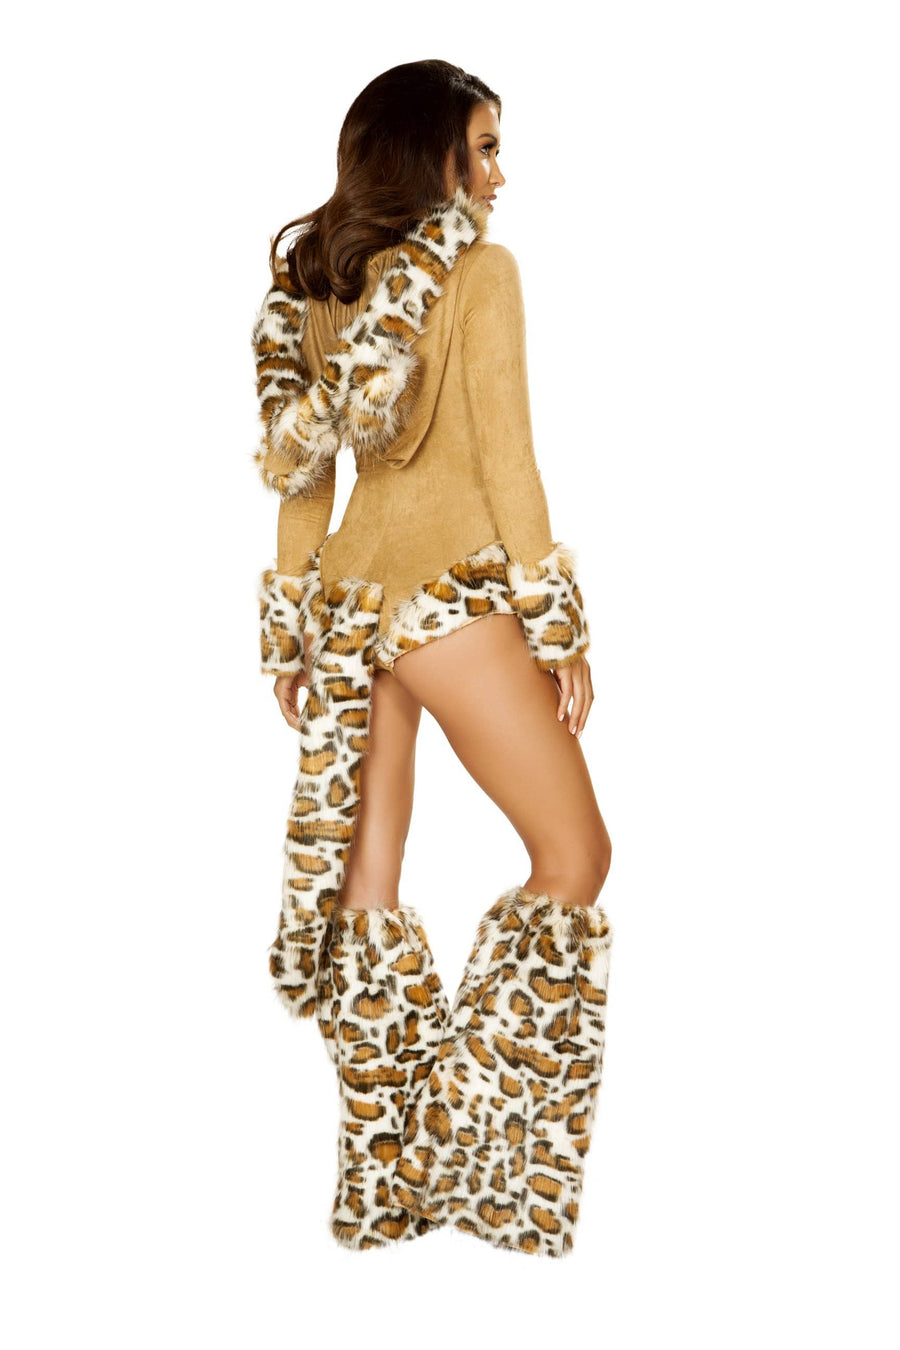 Roma Small / Brown Leopard Princess Furry Hooded Costume SHC-4874-S-R Apparel & Accessories > Costumes & Accessories > Costumes